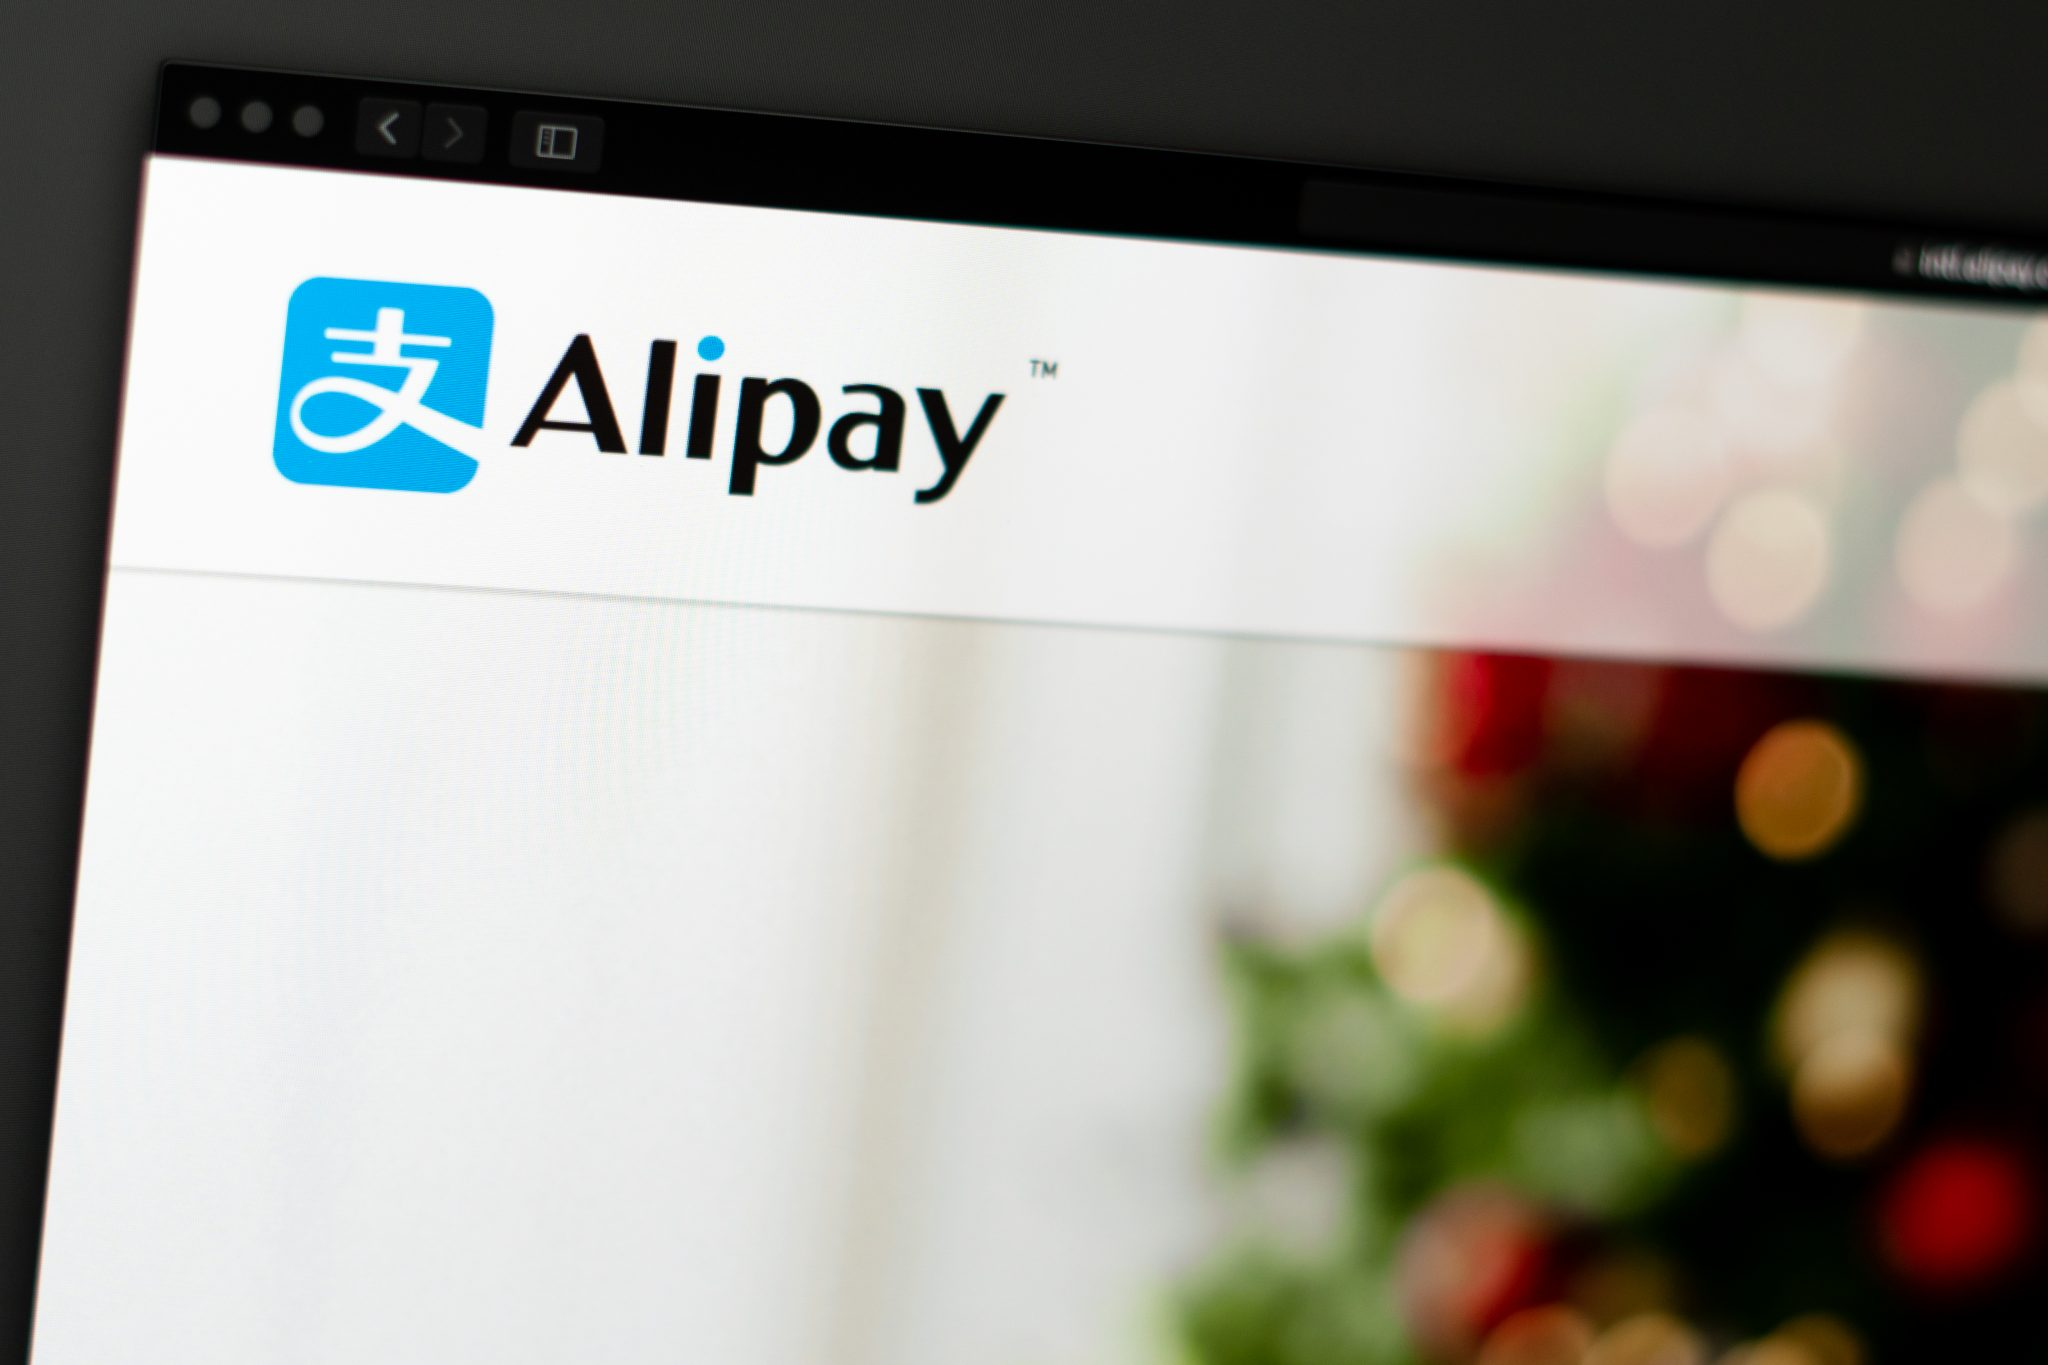 Miami / USA - 04.28.2019: Alipay company website homepage. Close up of Alipay logo. Can be used as illustrative for news media or other websites, good for info, business or marketing concept.